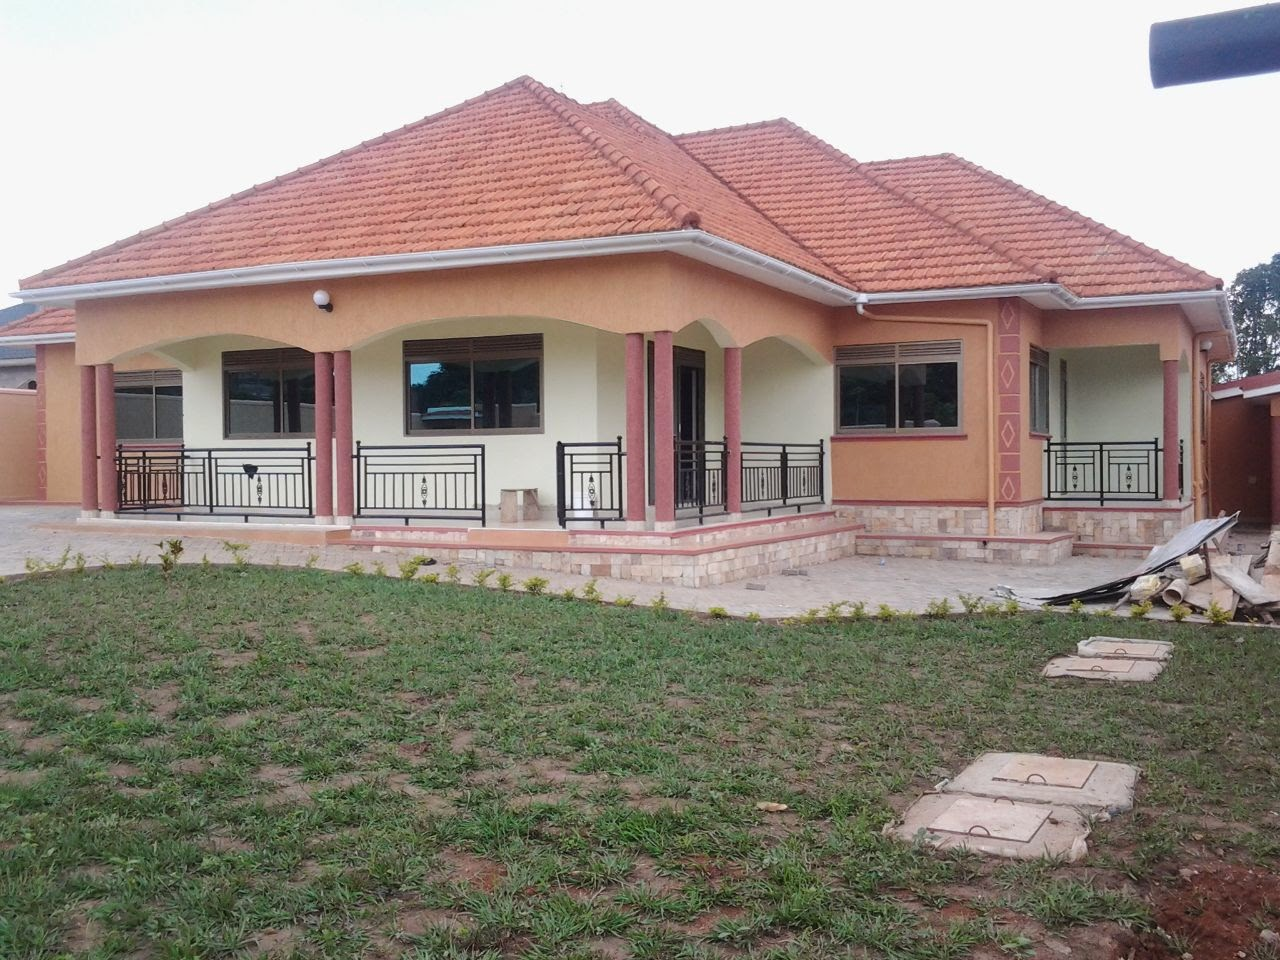 Houses for sale kampala uganda house for sale buwate Houses plans for sale